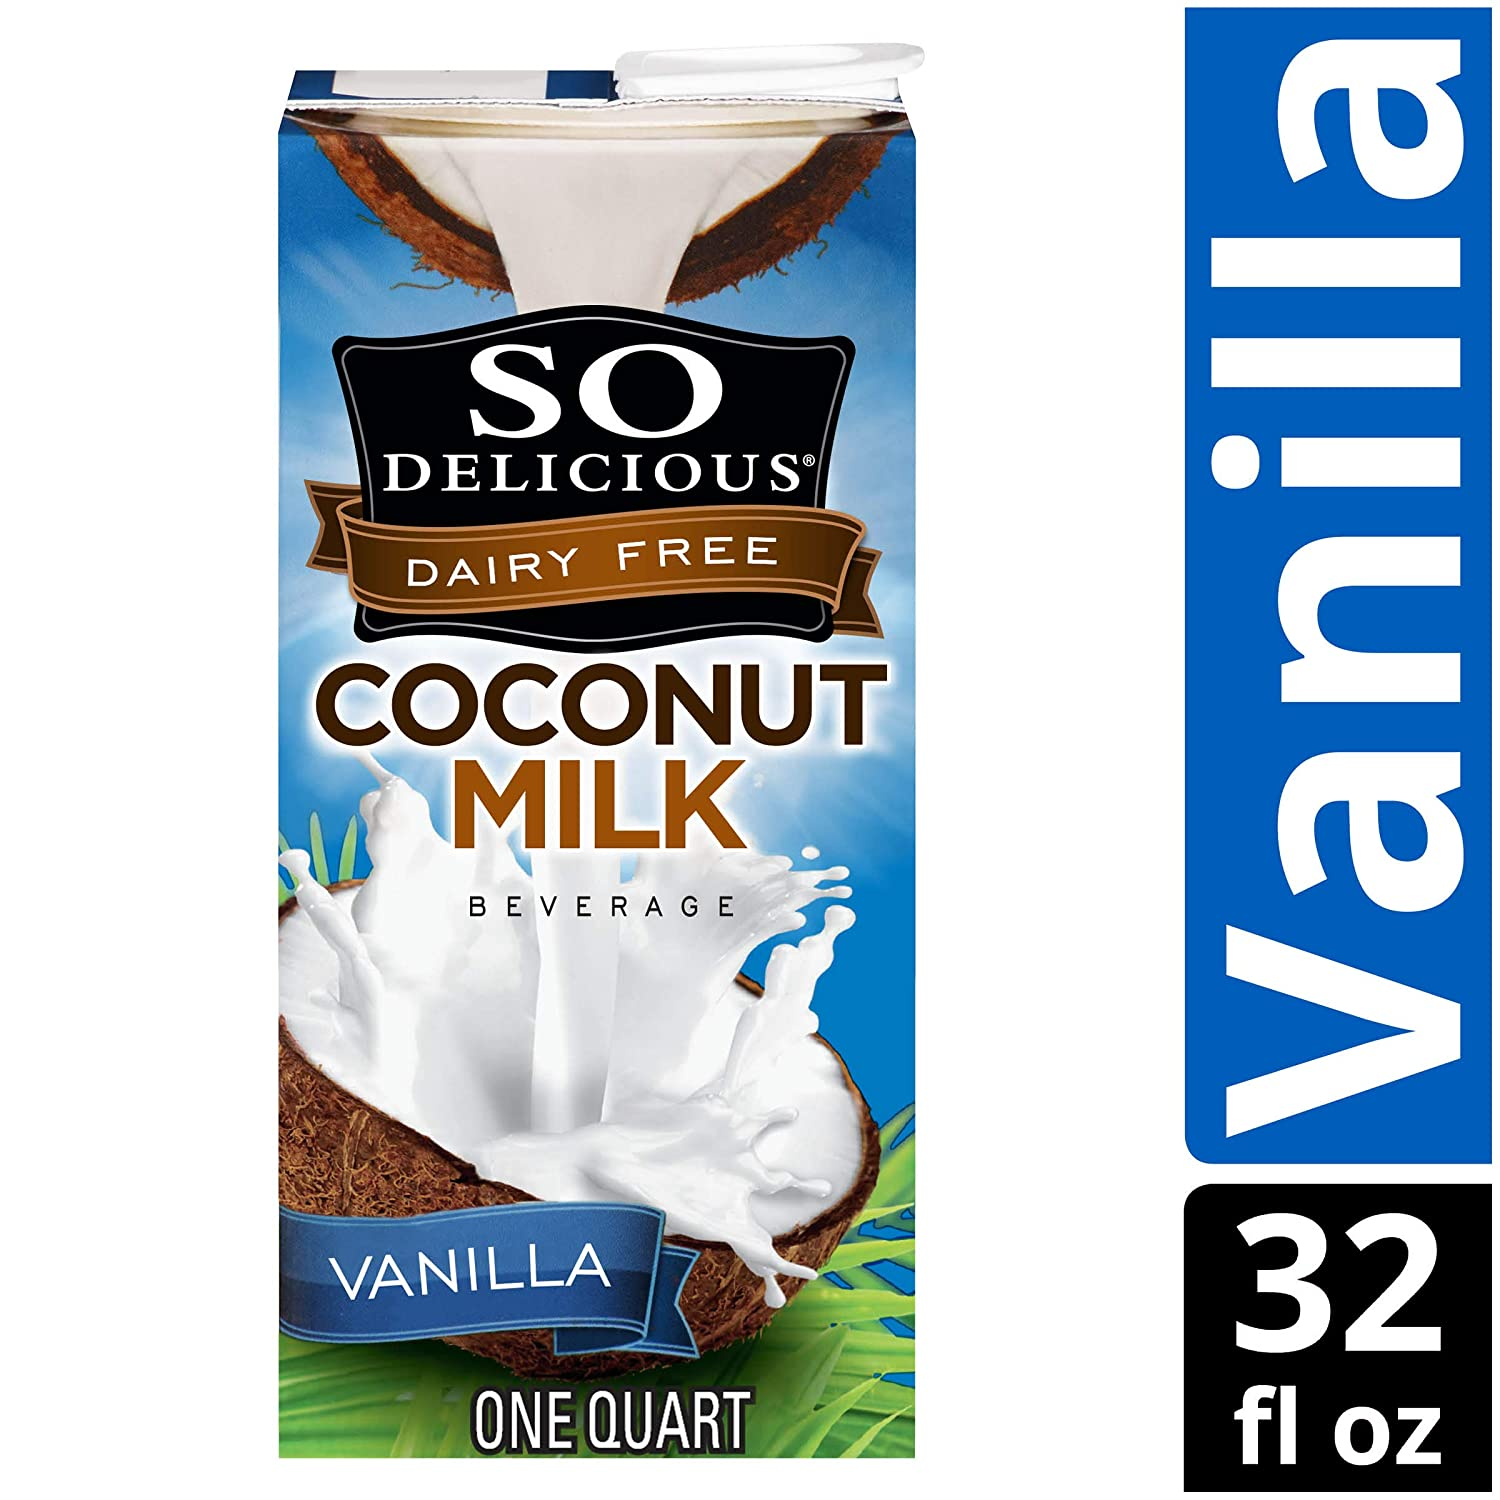 Dairy Soy and Almond Alternative Vanilla Milk Drink, Shelf-Stable Aseptic Packaging